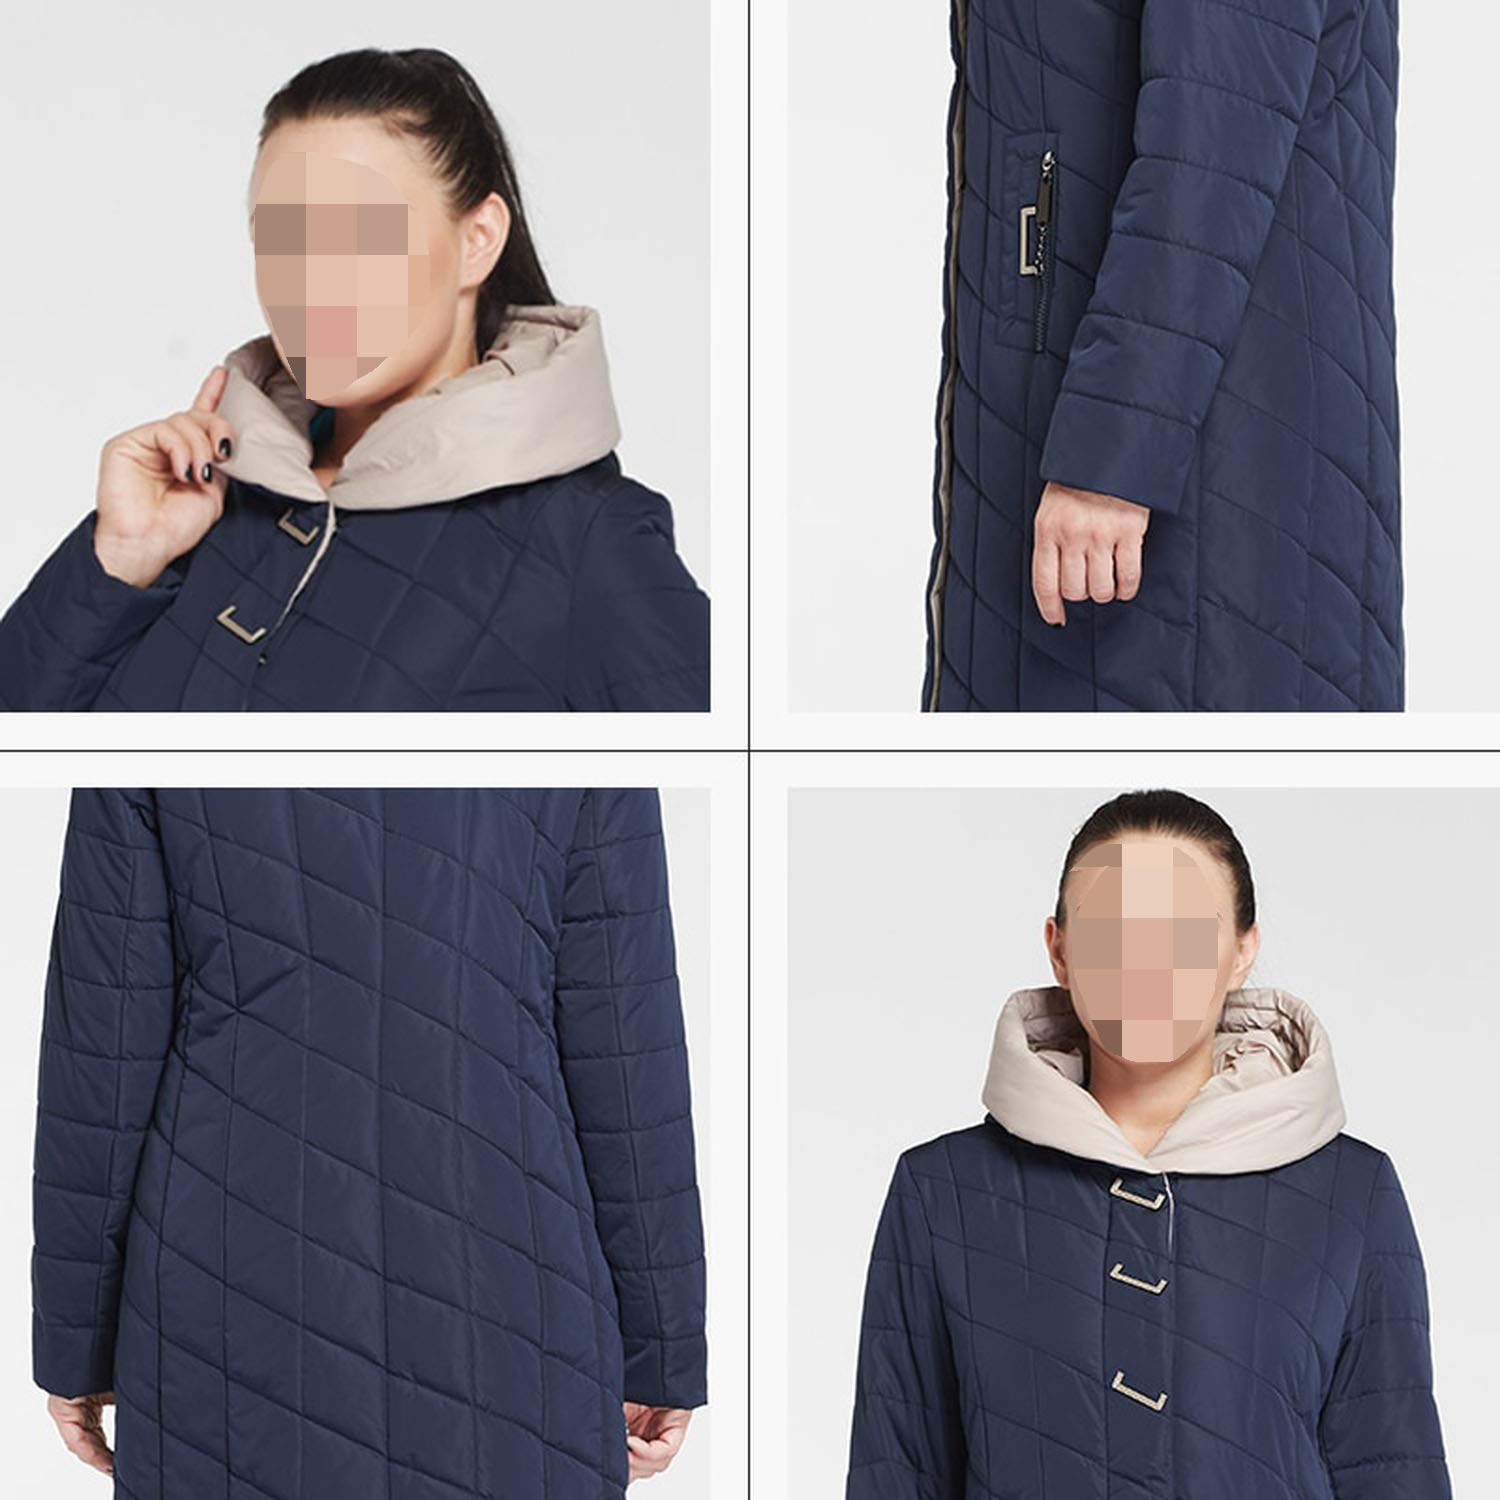 Khunria-show-outerwear New Winter Cotton Large Size Coatwarm Hooded Winter Lady Jacket Am-2674,Gray,5XL,Russian Federation